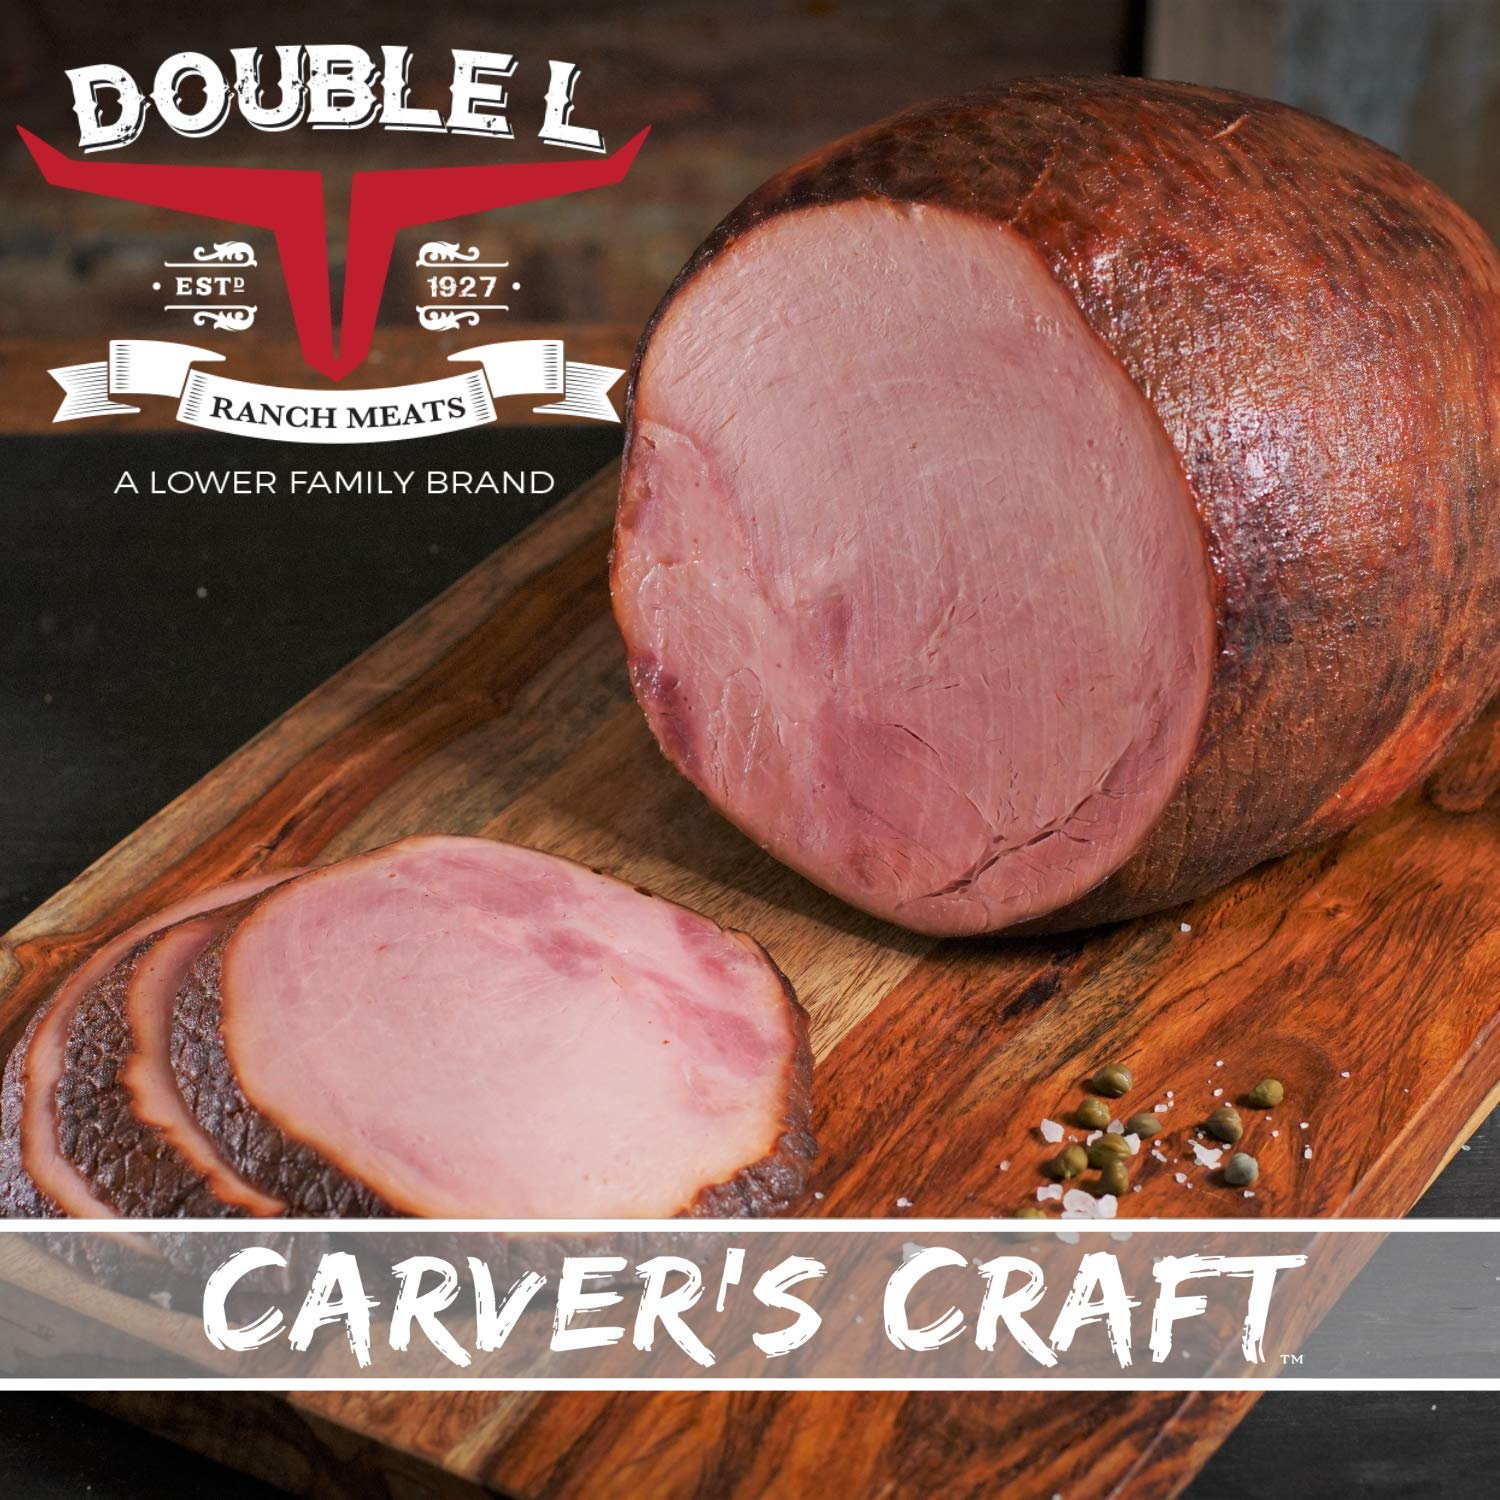 Boneless Holiday Ham by Double L Ranch Meats | Hickory Smoked | Fully Cooked & Ready to serve 8-9 Lbs. (Serves 20-25)